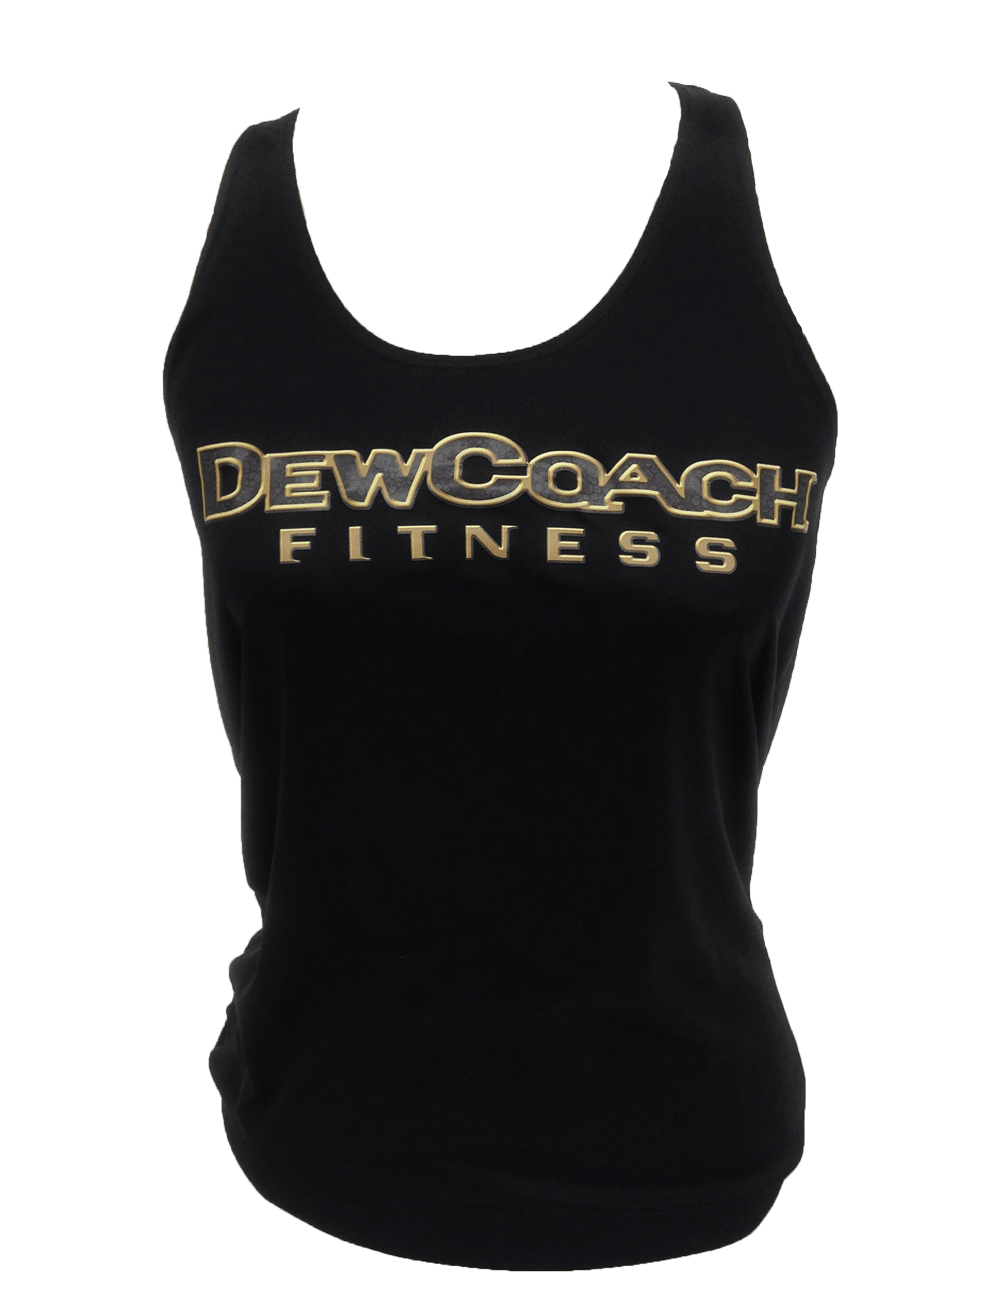 Dew clothing store